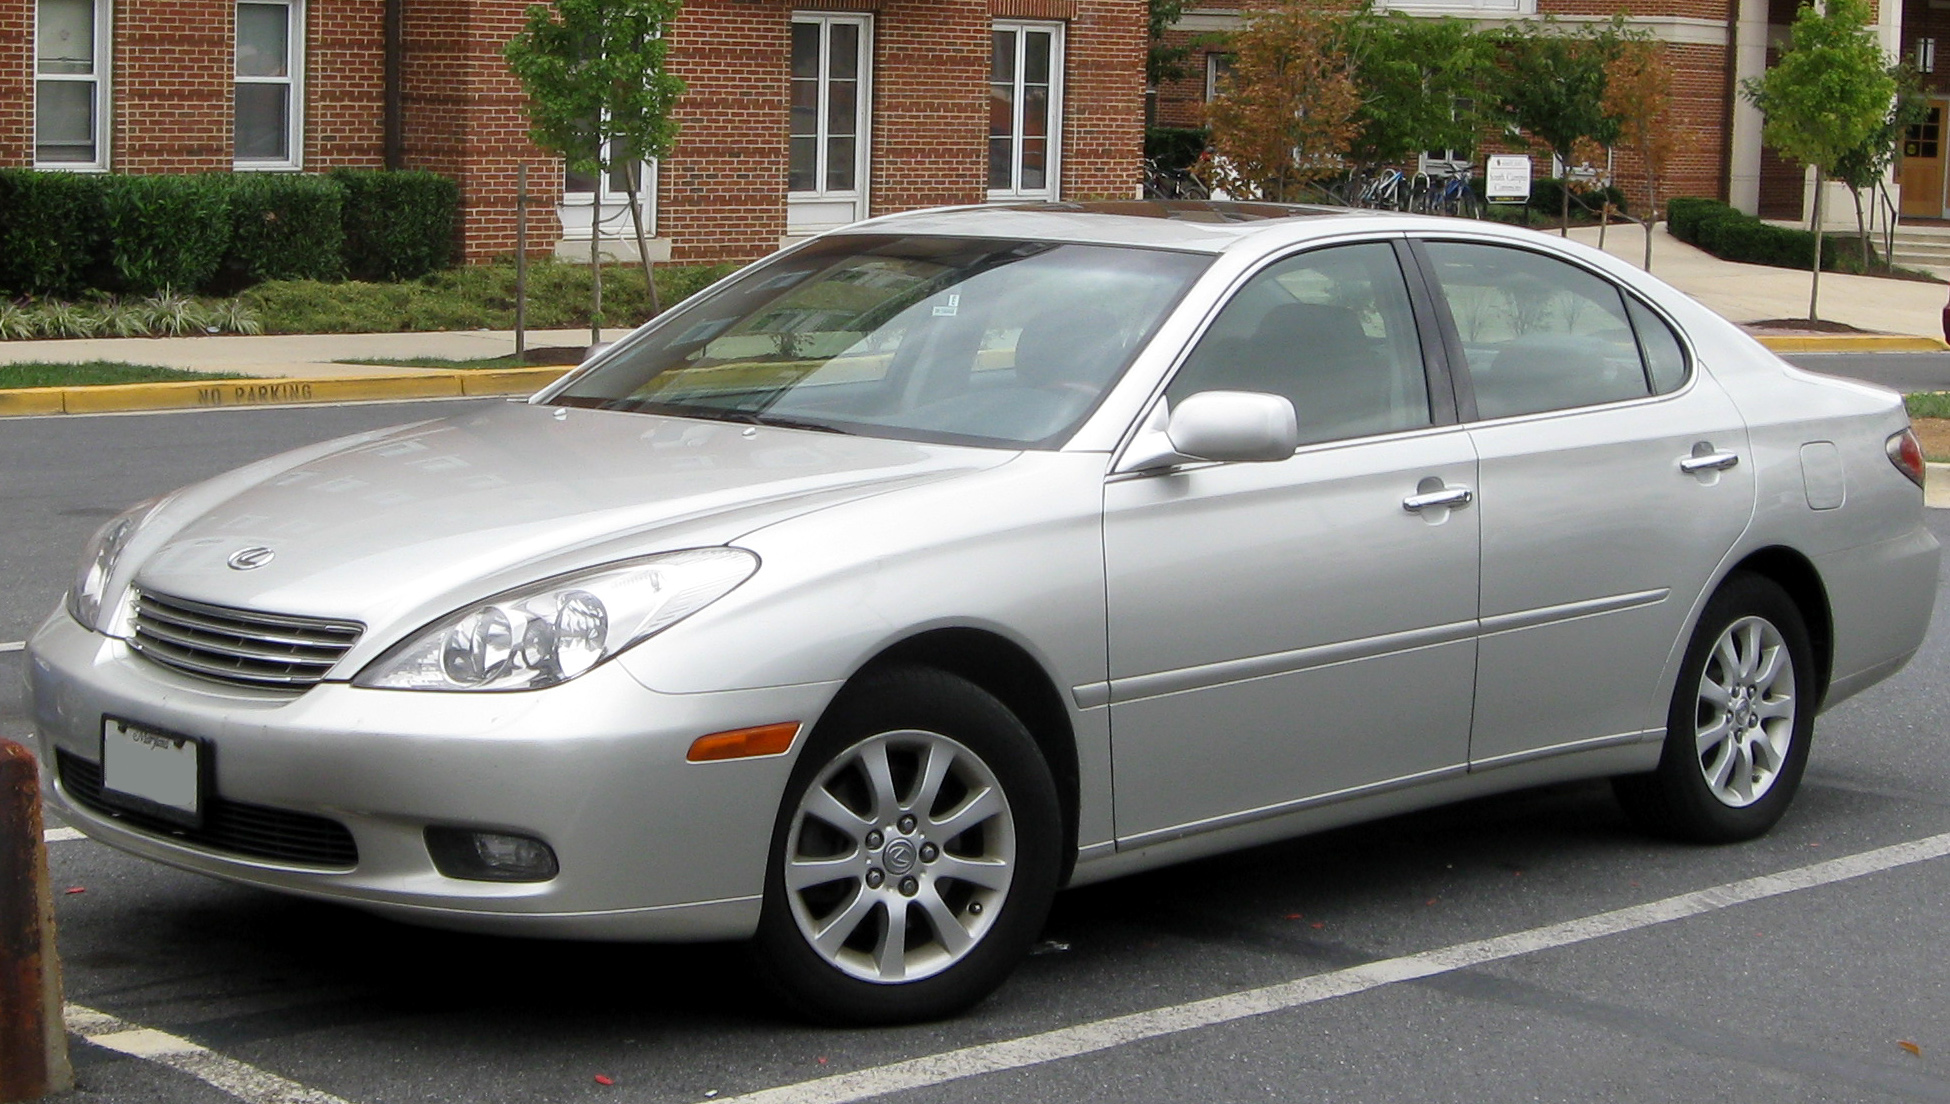 Good File:Lexus ES300    09 12 2009